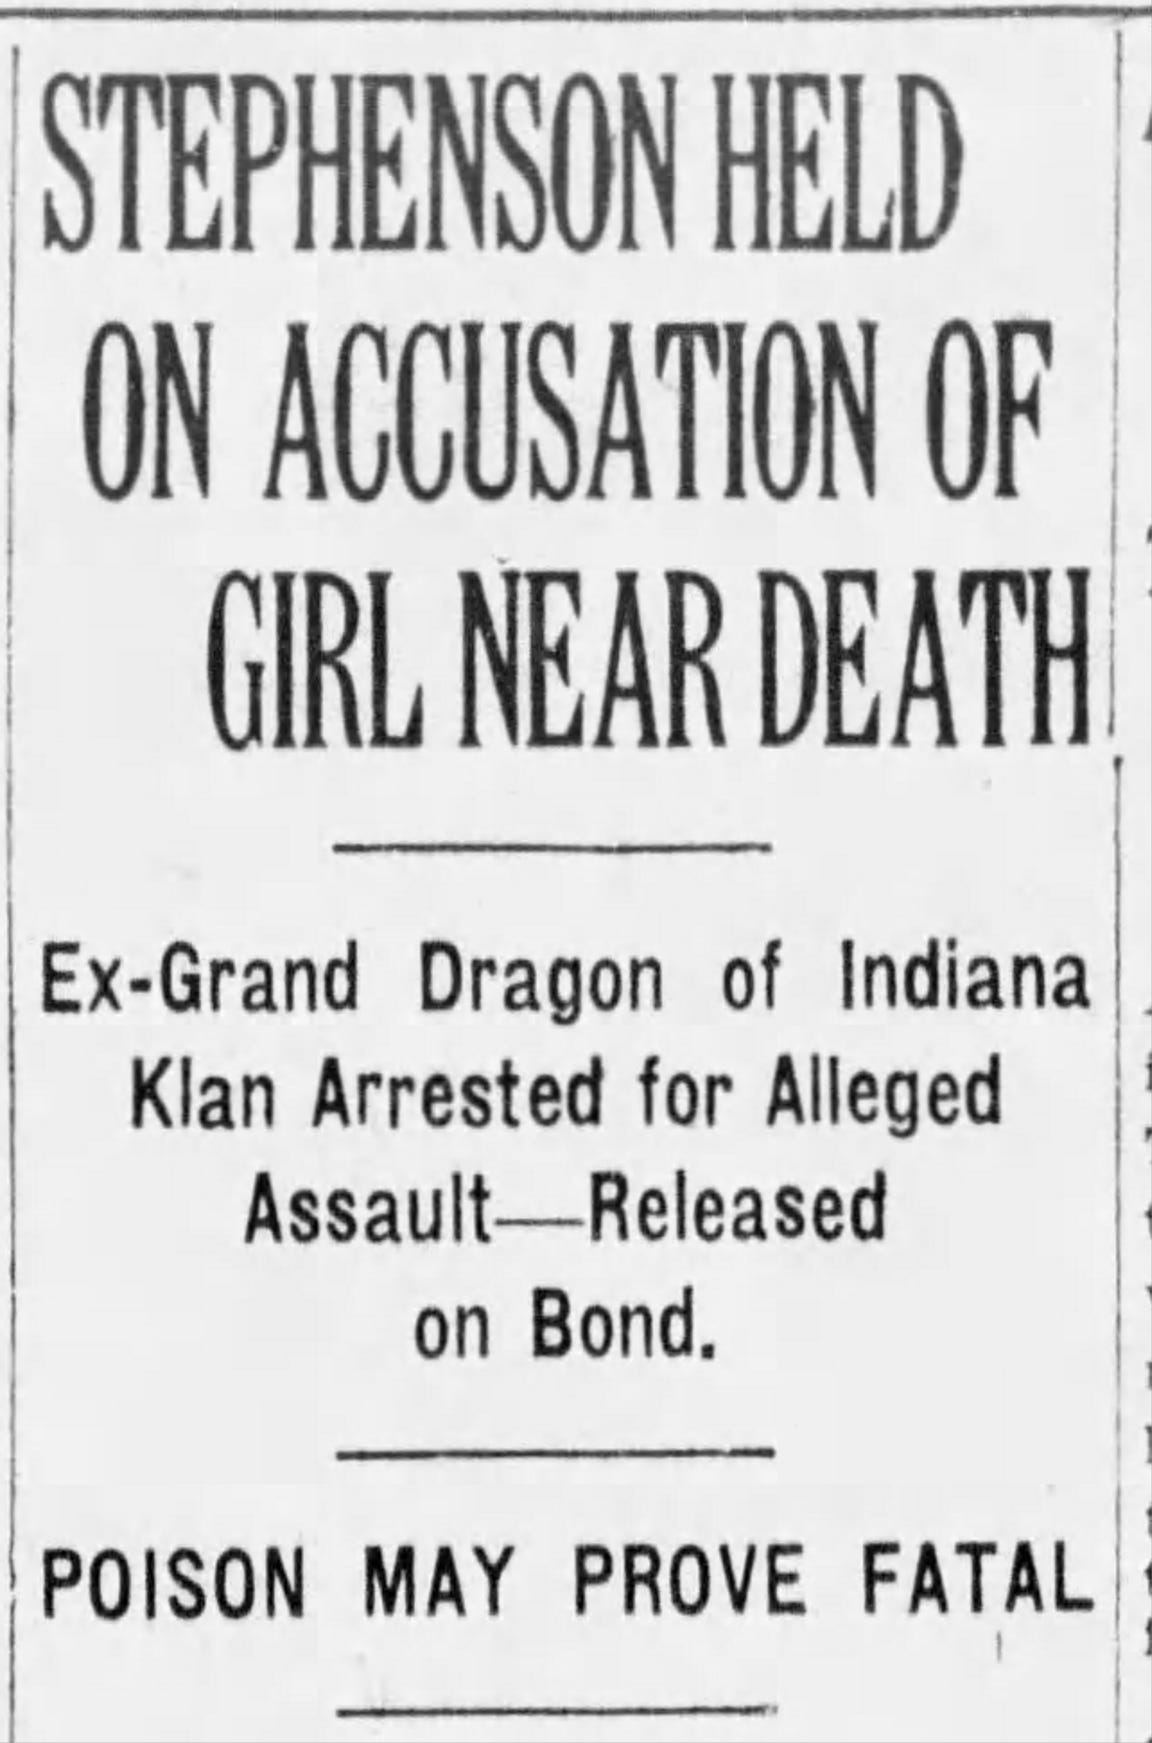 Indianapolis Star April 3, 1925 article